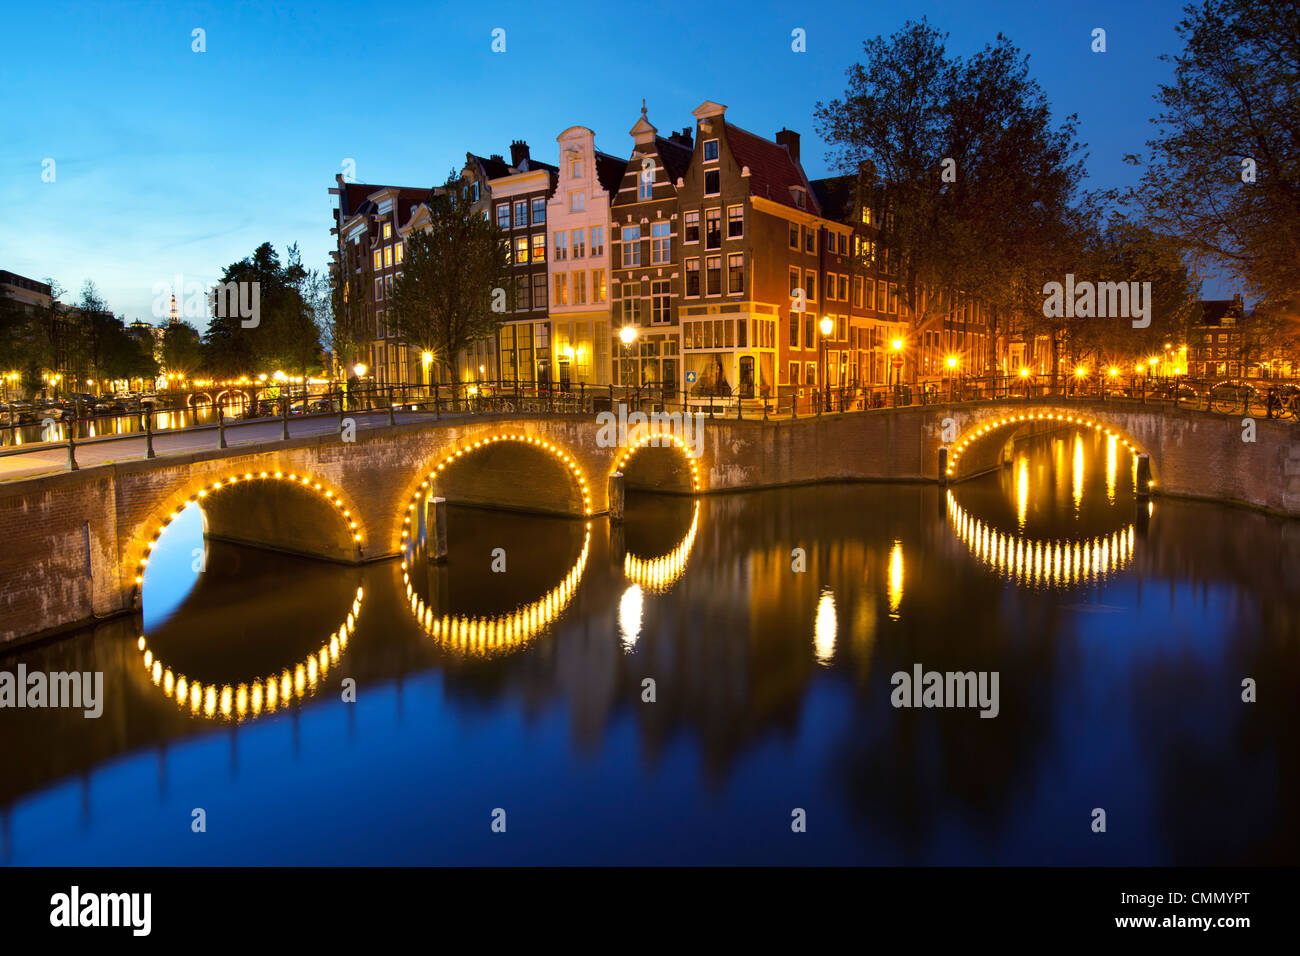 Keizersgracht at night, Amsterdam, North Holland, Netherlands, Europe - Stock Image